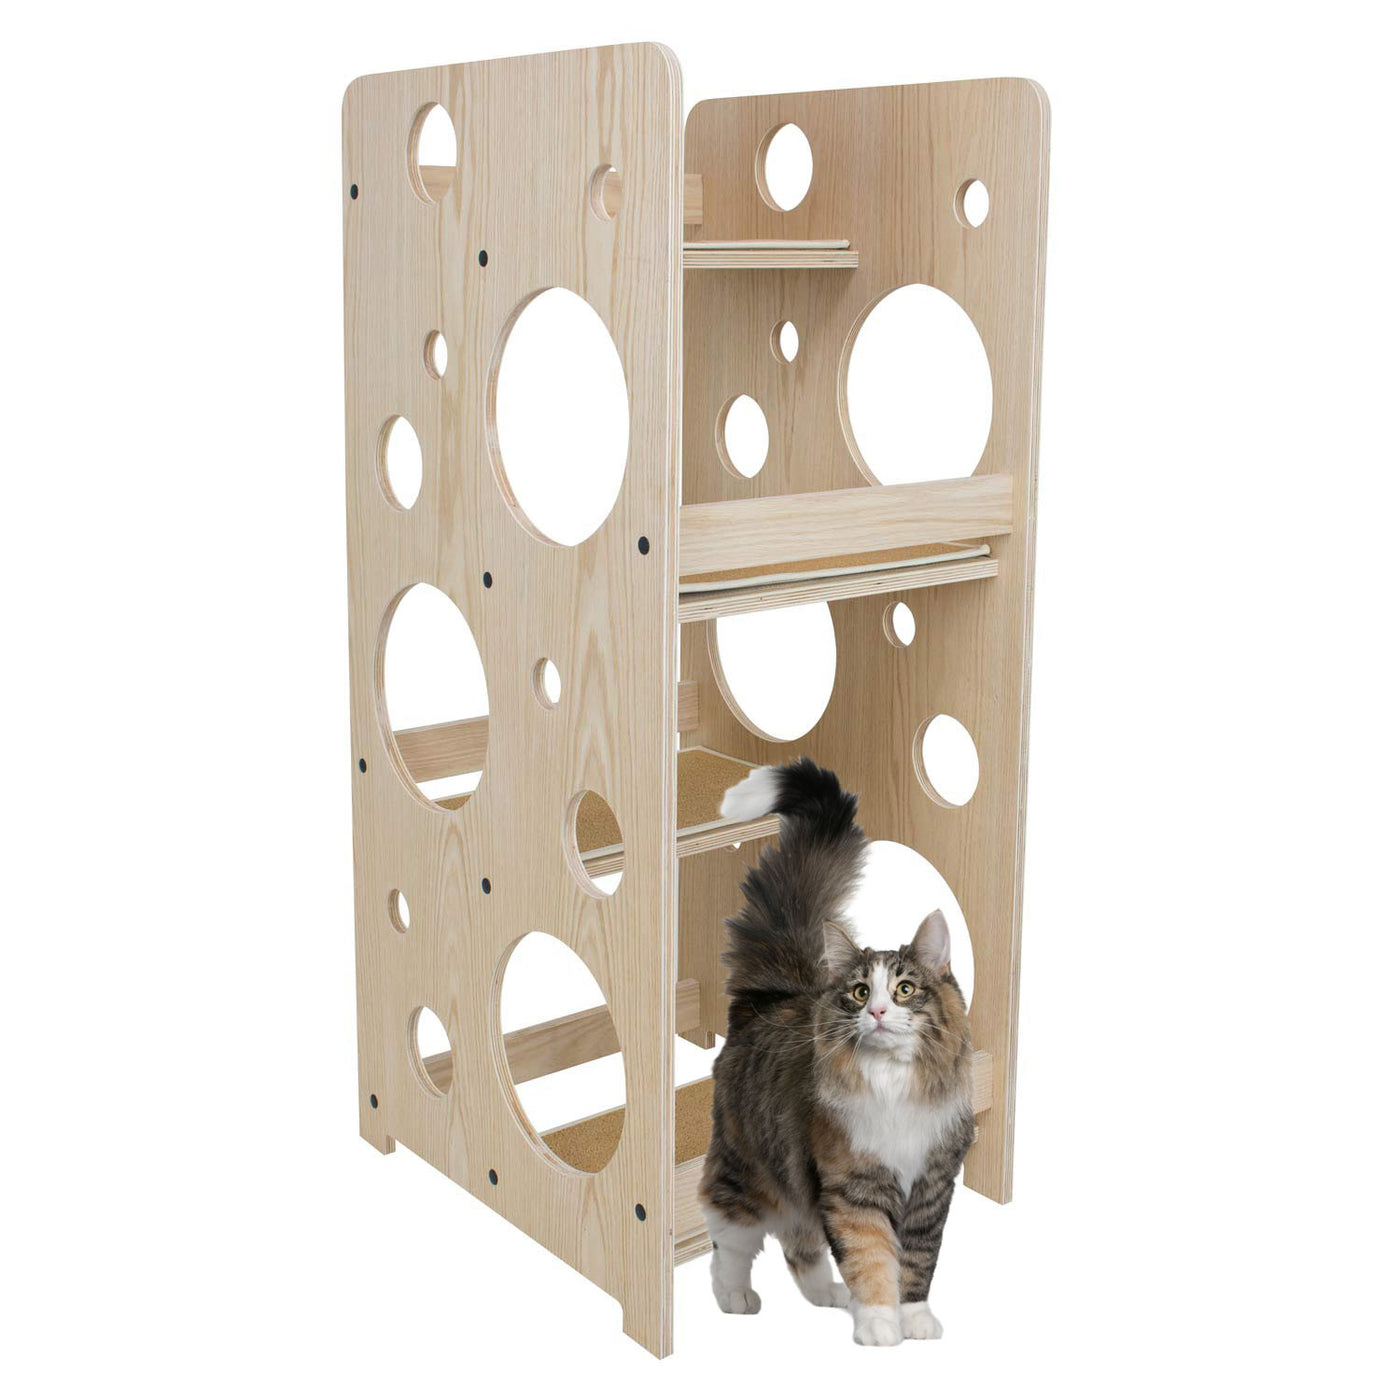 Cat furniture modern Minimalist Angled View With Cat Cuteness Cat Tree Modern Wood Bubble Cat Tower Frontpetcom